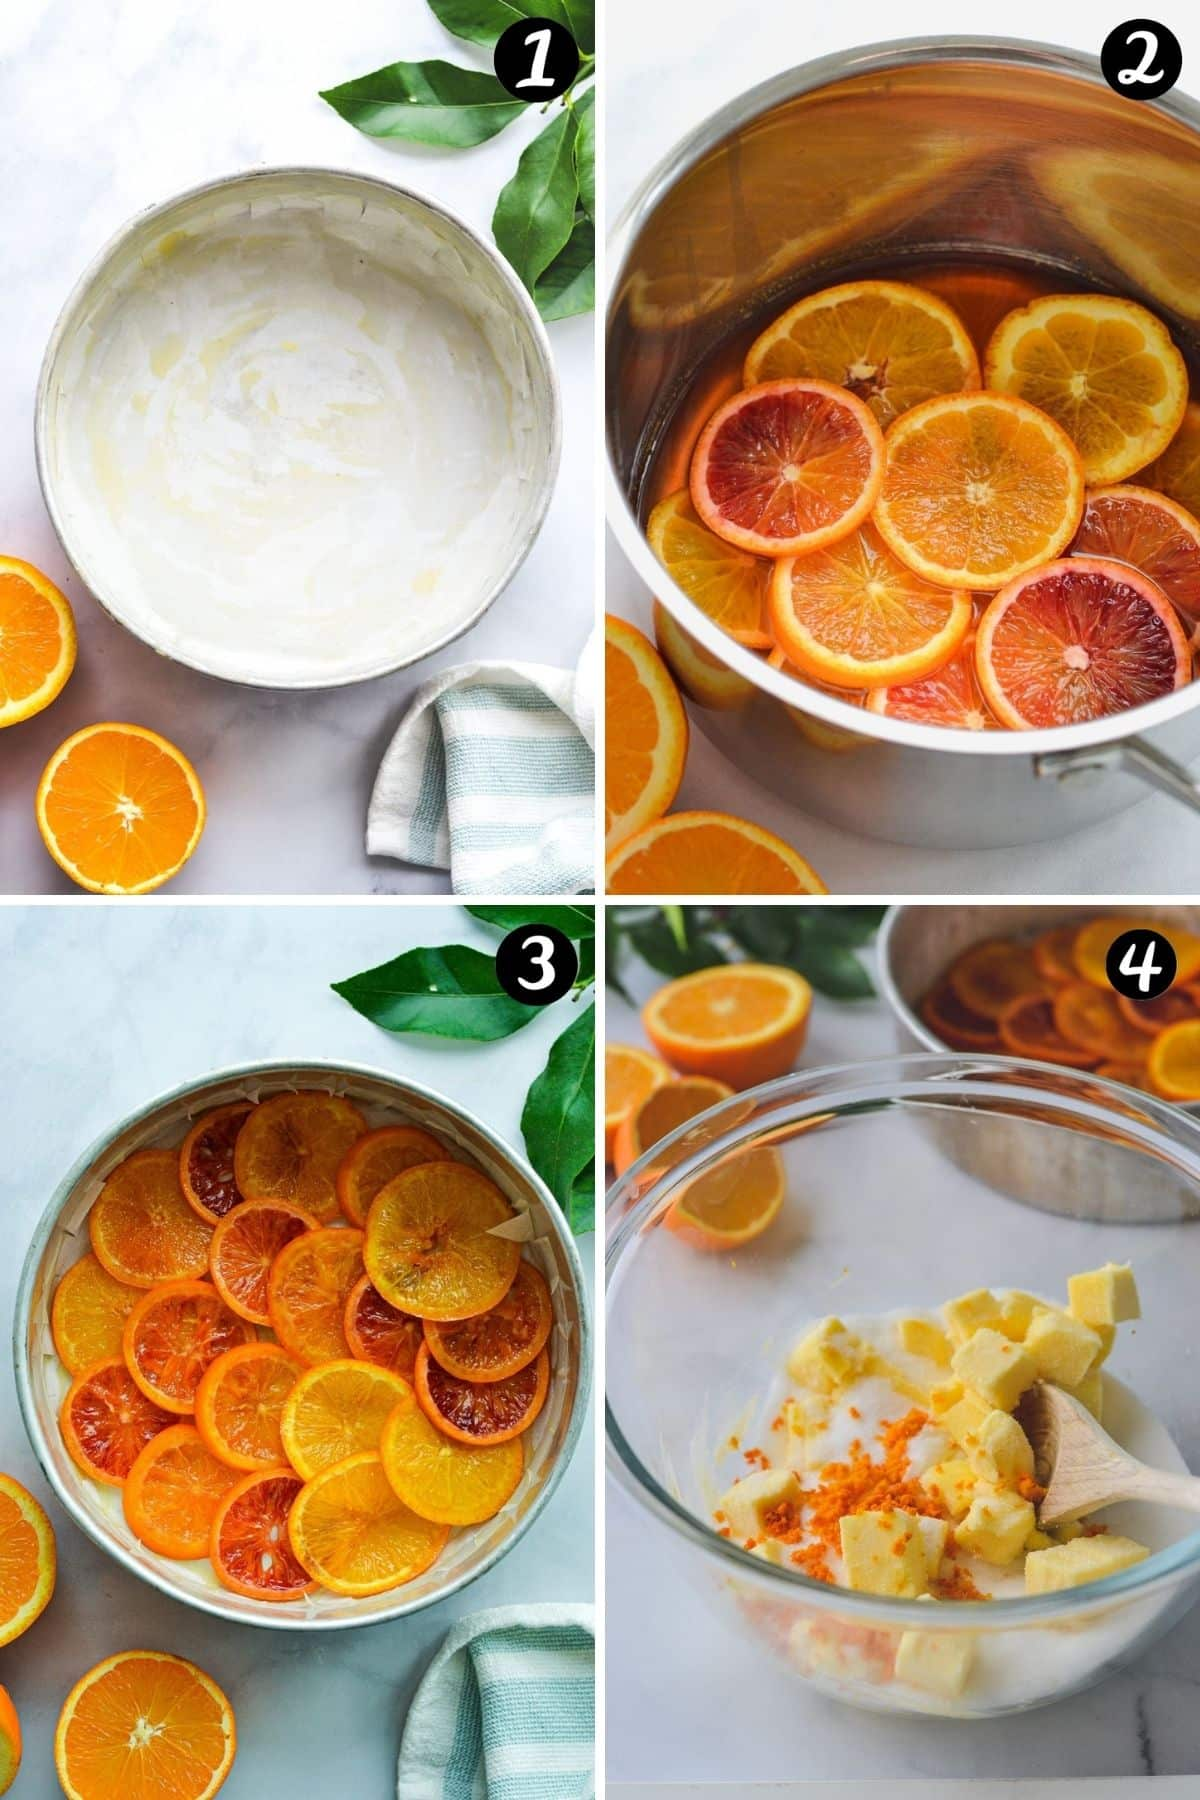 a grid showing orange syrup being made in a pan and orange slices in a cake tin